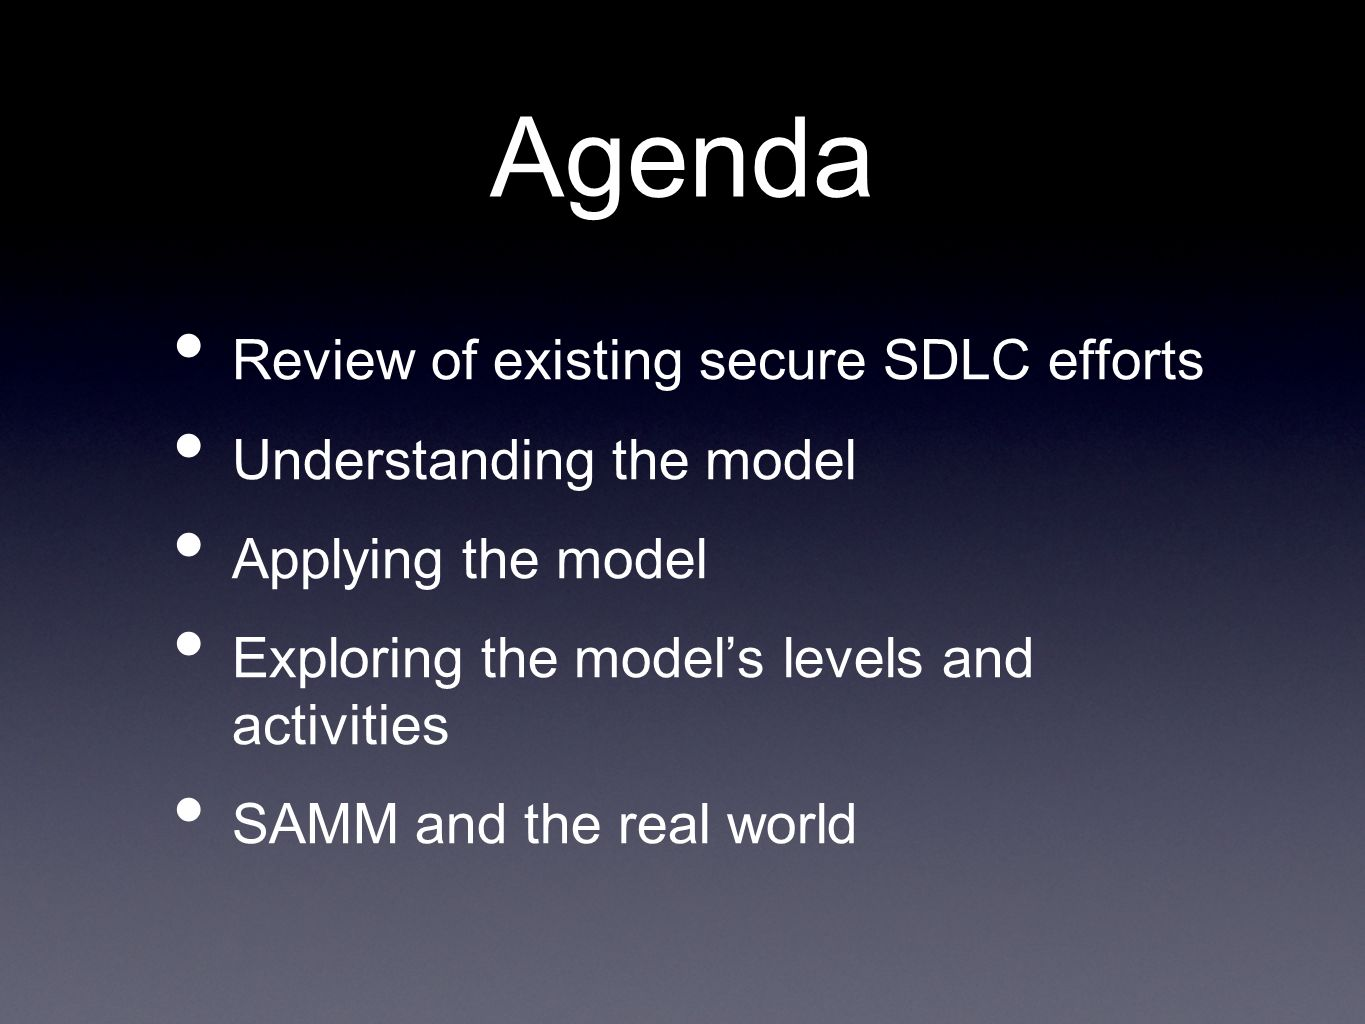 SAMM Security Practices From each of the Business Functions, 3 Security Practices are defined The Security Practices cover all areas relevant to software security assurance Each one is a silo for improvement